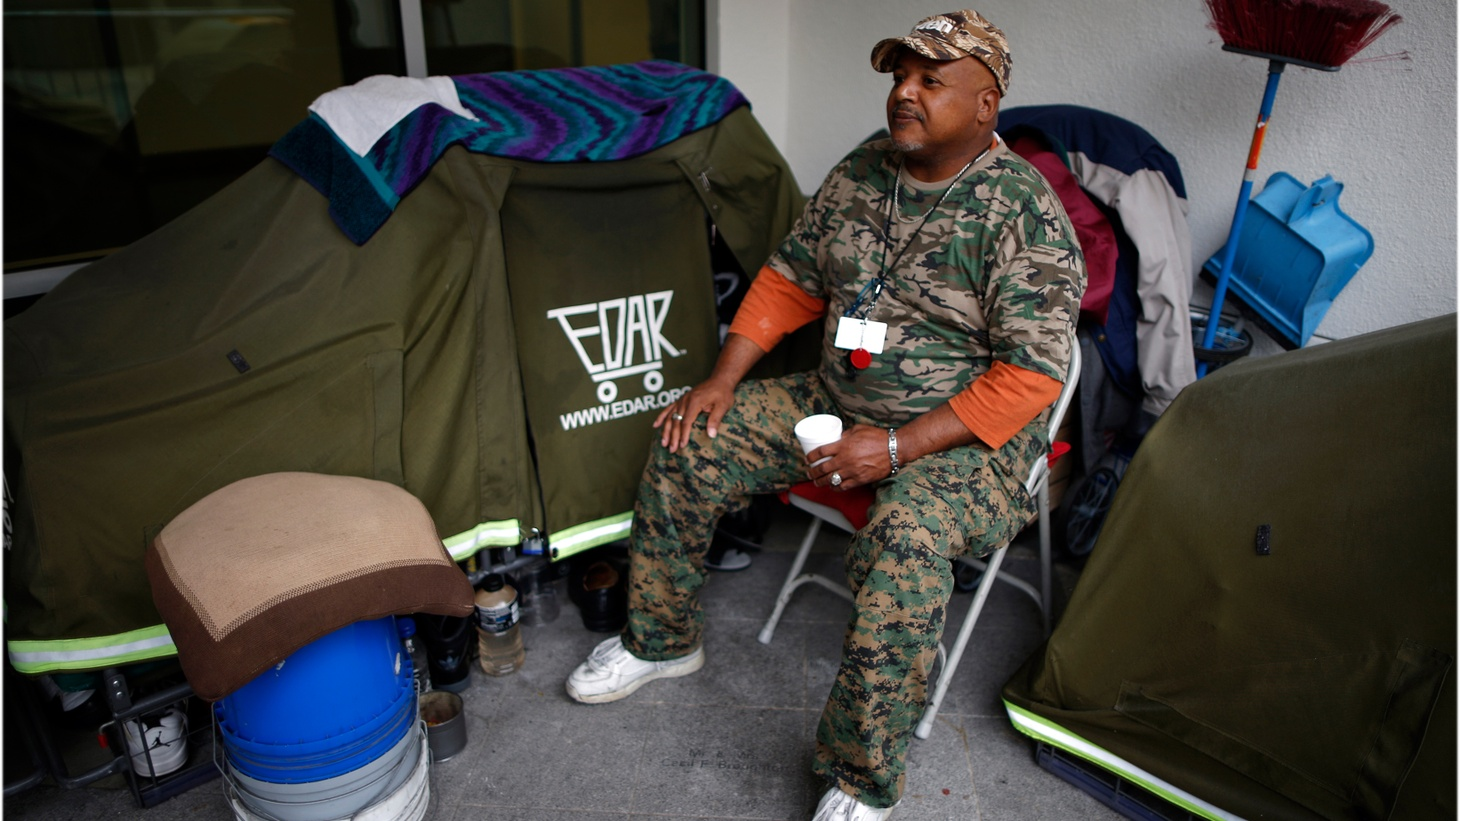 The Veterans' Administration has finally agreed that homeless military veterans will be housed on 400 acres in West LA—land dedicated to them more than 100 years ago. An exit strategy for commercial properties that have been leasing the land will be negotiated.